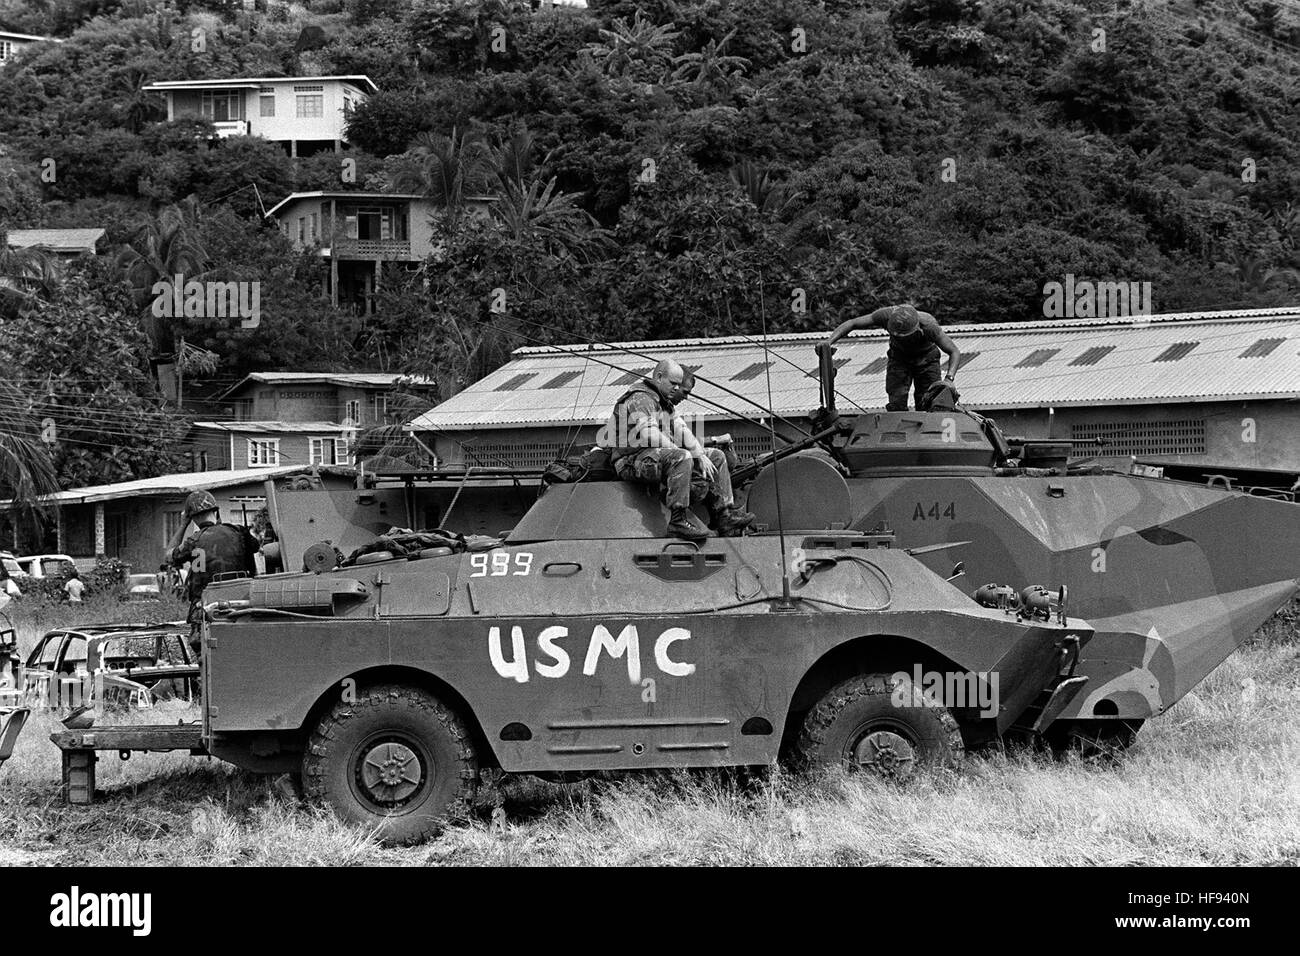 Marines sit aboard a captured Soviet BRDM-2 Amphibious scout car, foreground, and an LVTP7 tracked landing vehicle - Stock Image